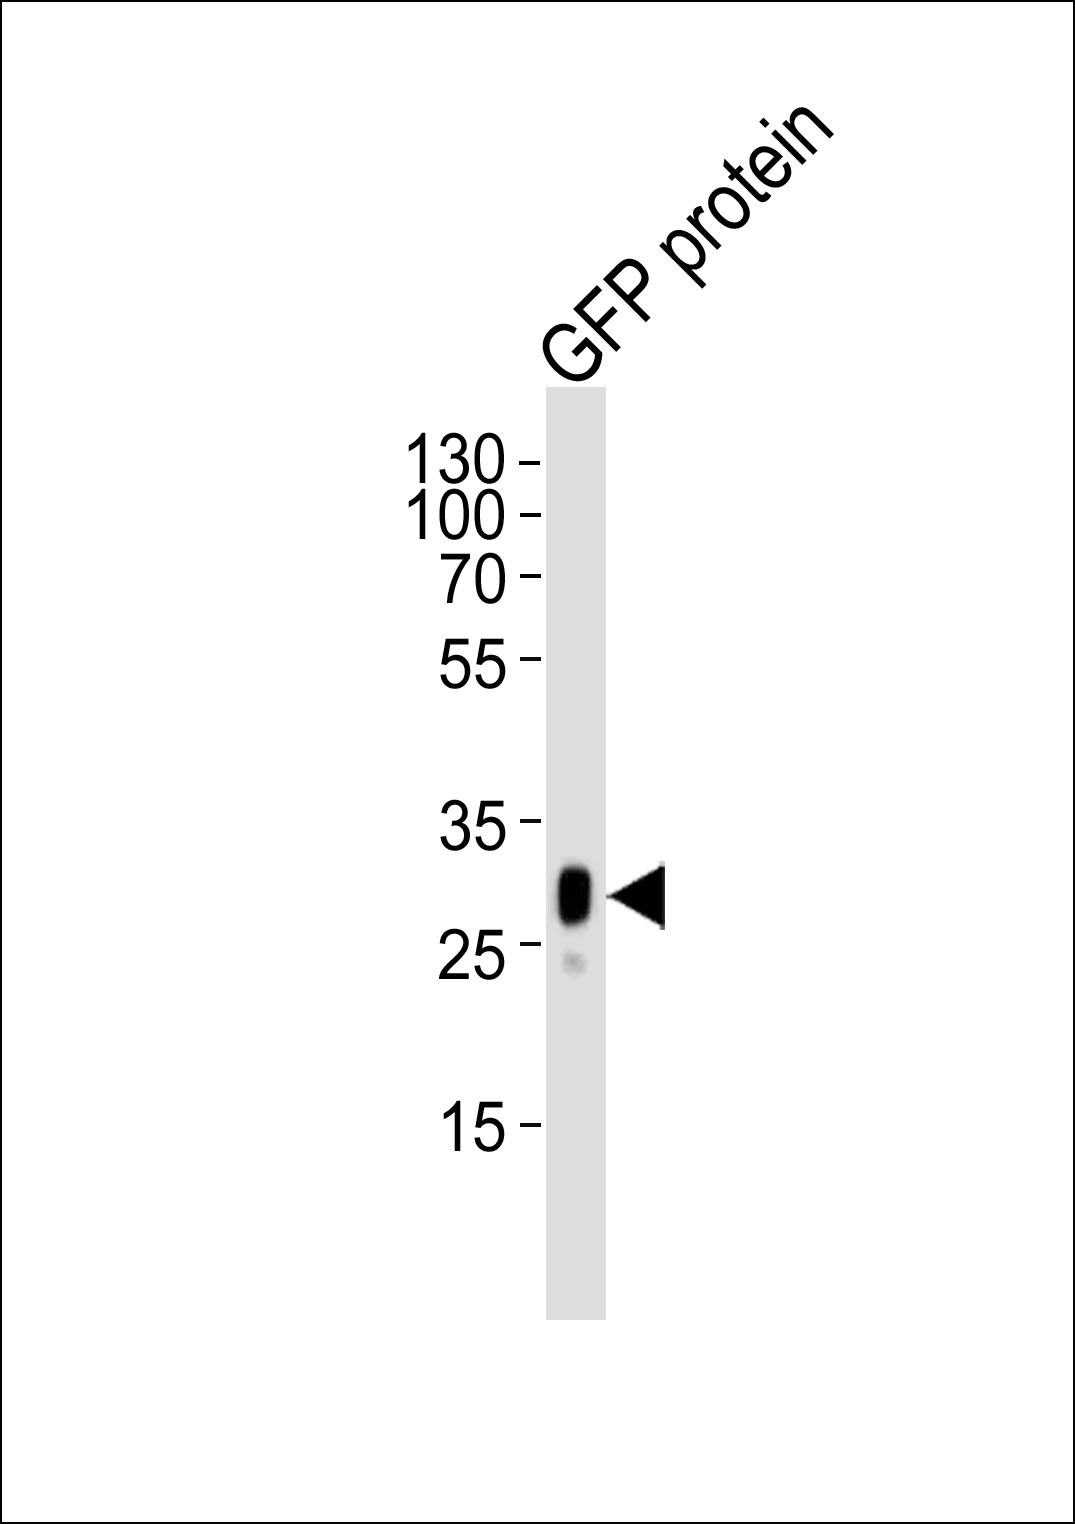 WB - GFP Tag Antibody AM1009a